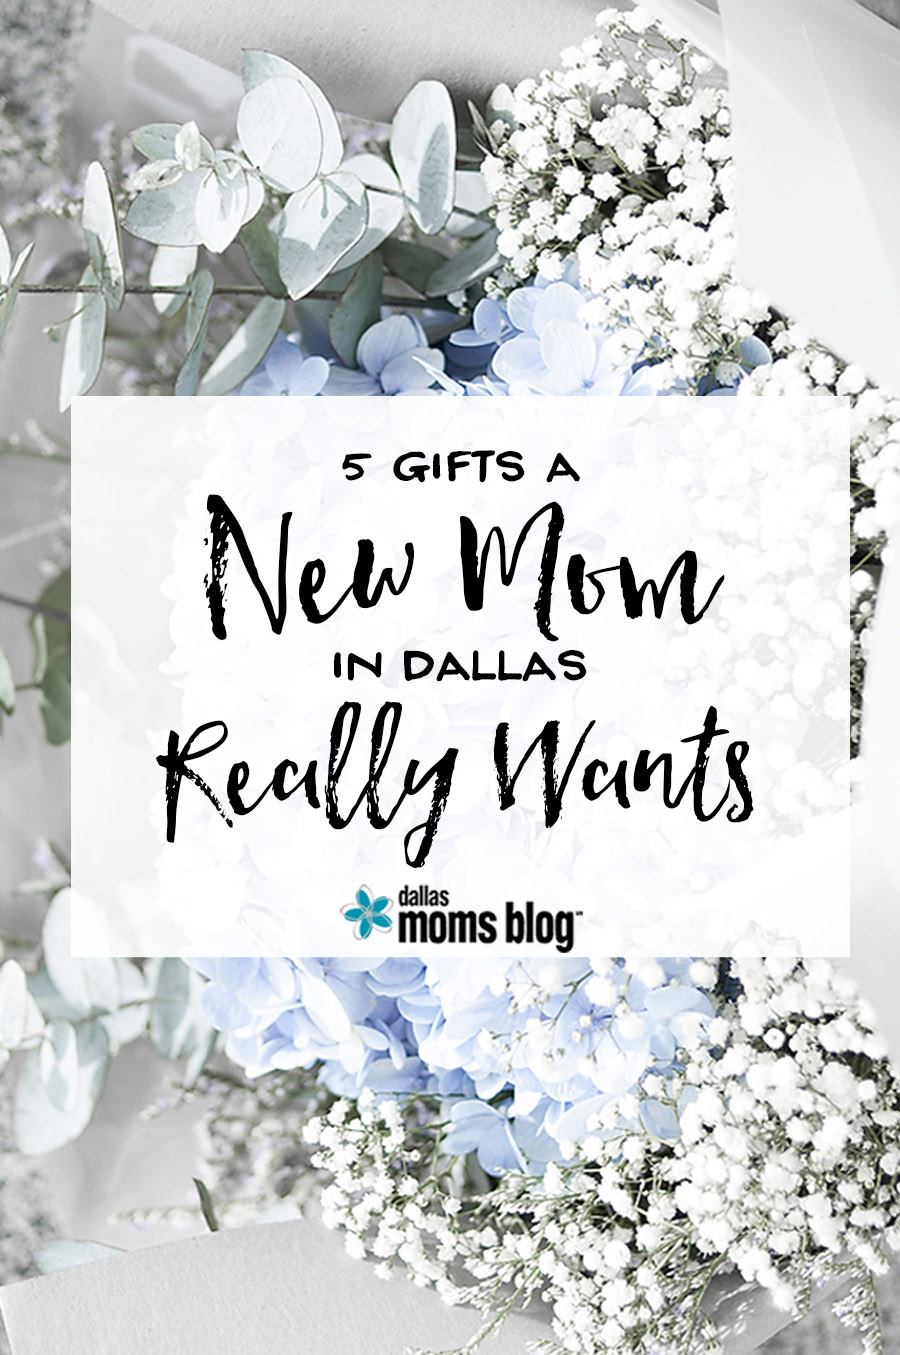 Baby Shower Gift Alternatives   The Best Gifts For New Moms In Dallas |  Dallas Moms